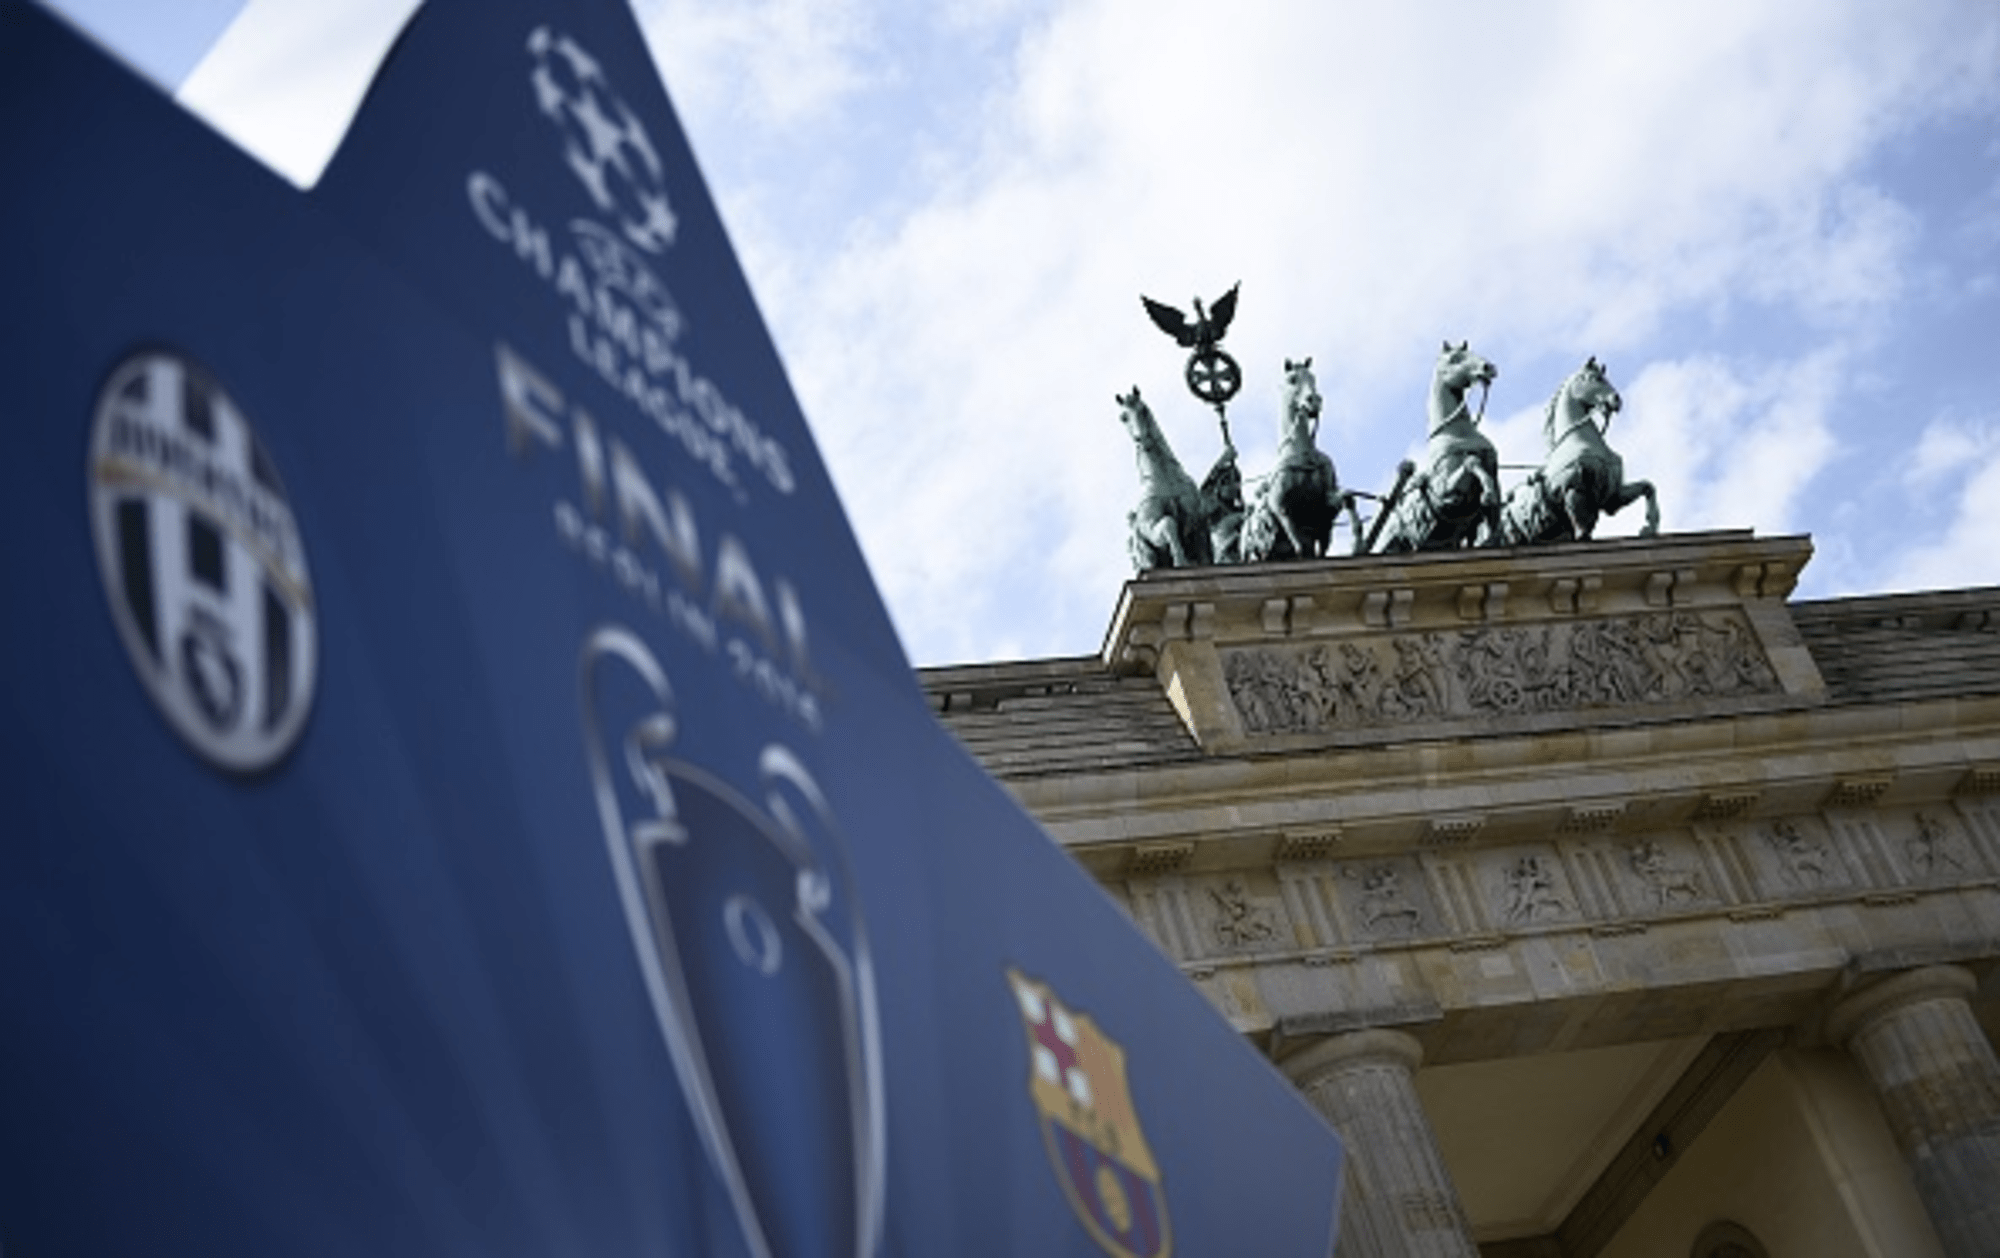 UEFA Champions League final preview: 5 things to watch